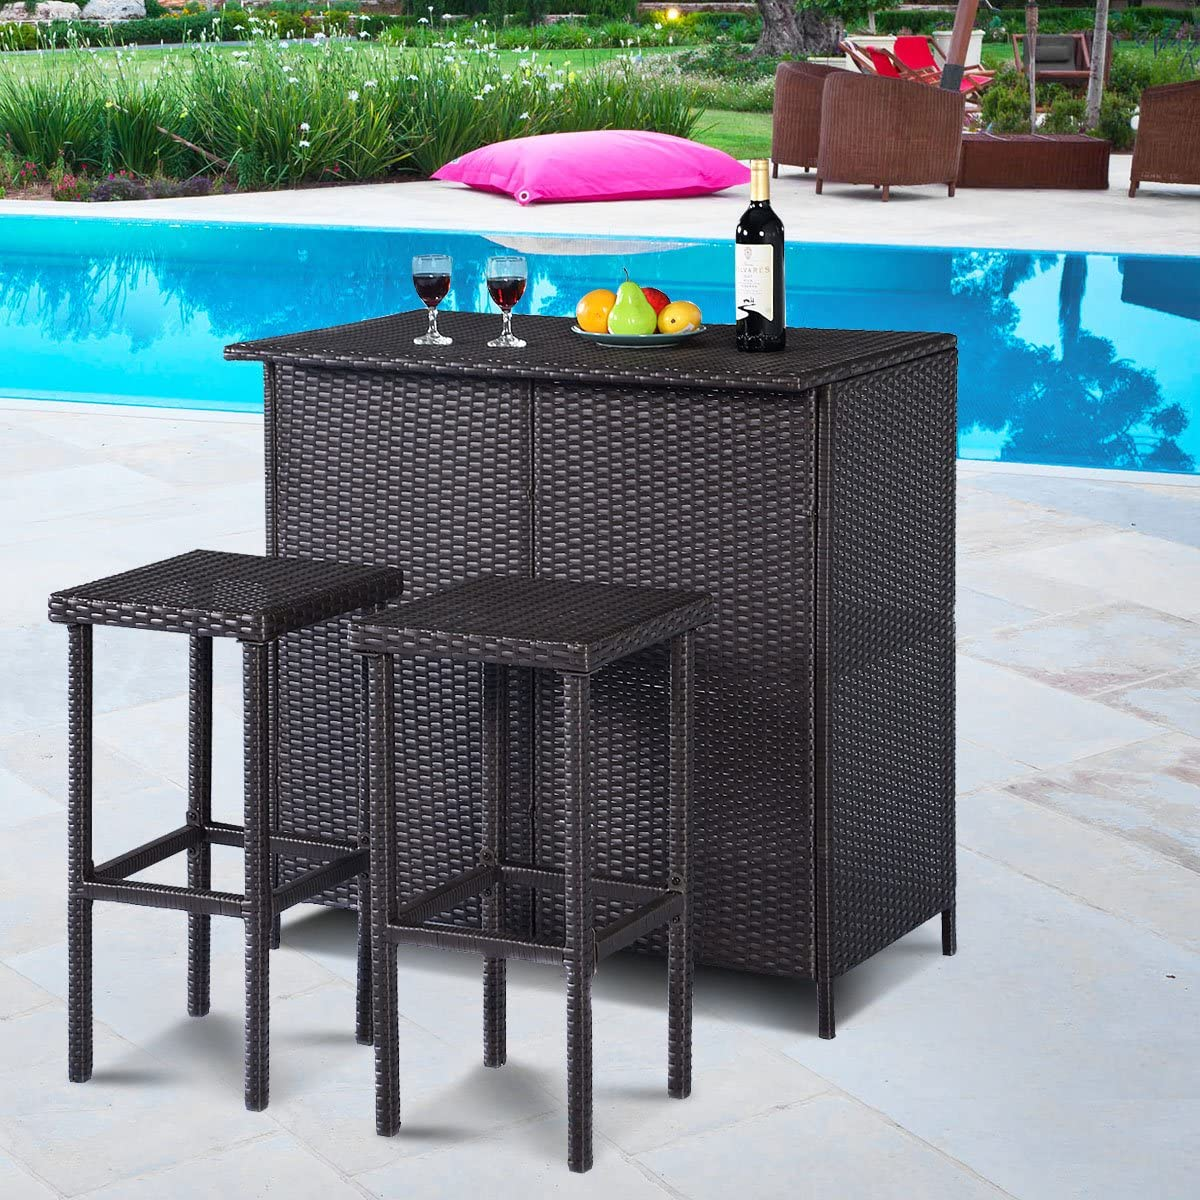 3 piece patio bar set rattan wicker bar stools table for lawn pool backyard garden dining set with 2 storage shelves indoor outdoor moder wicker bar